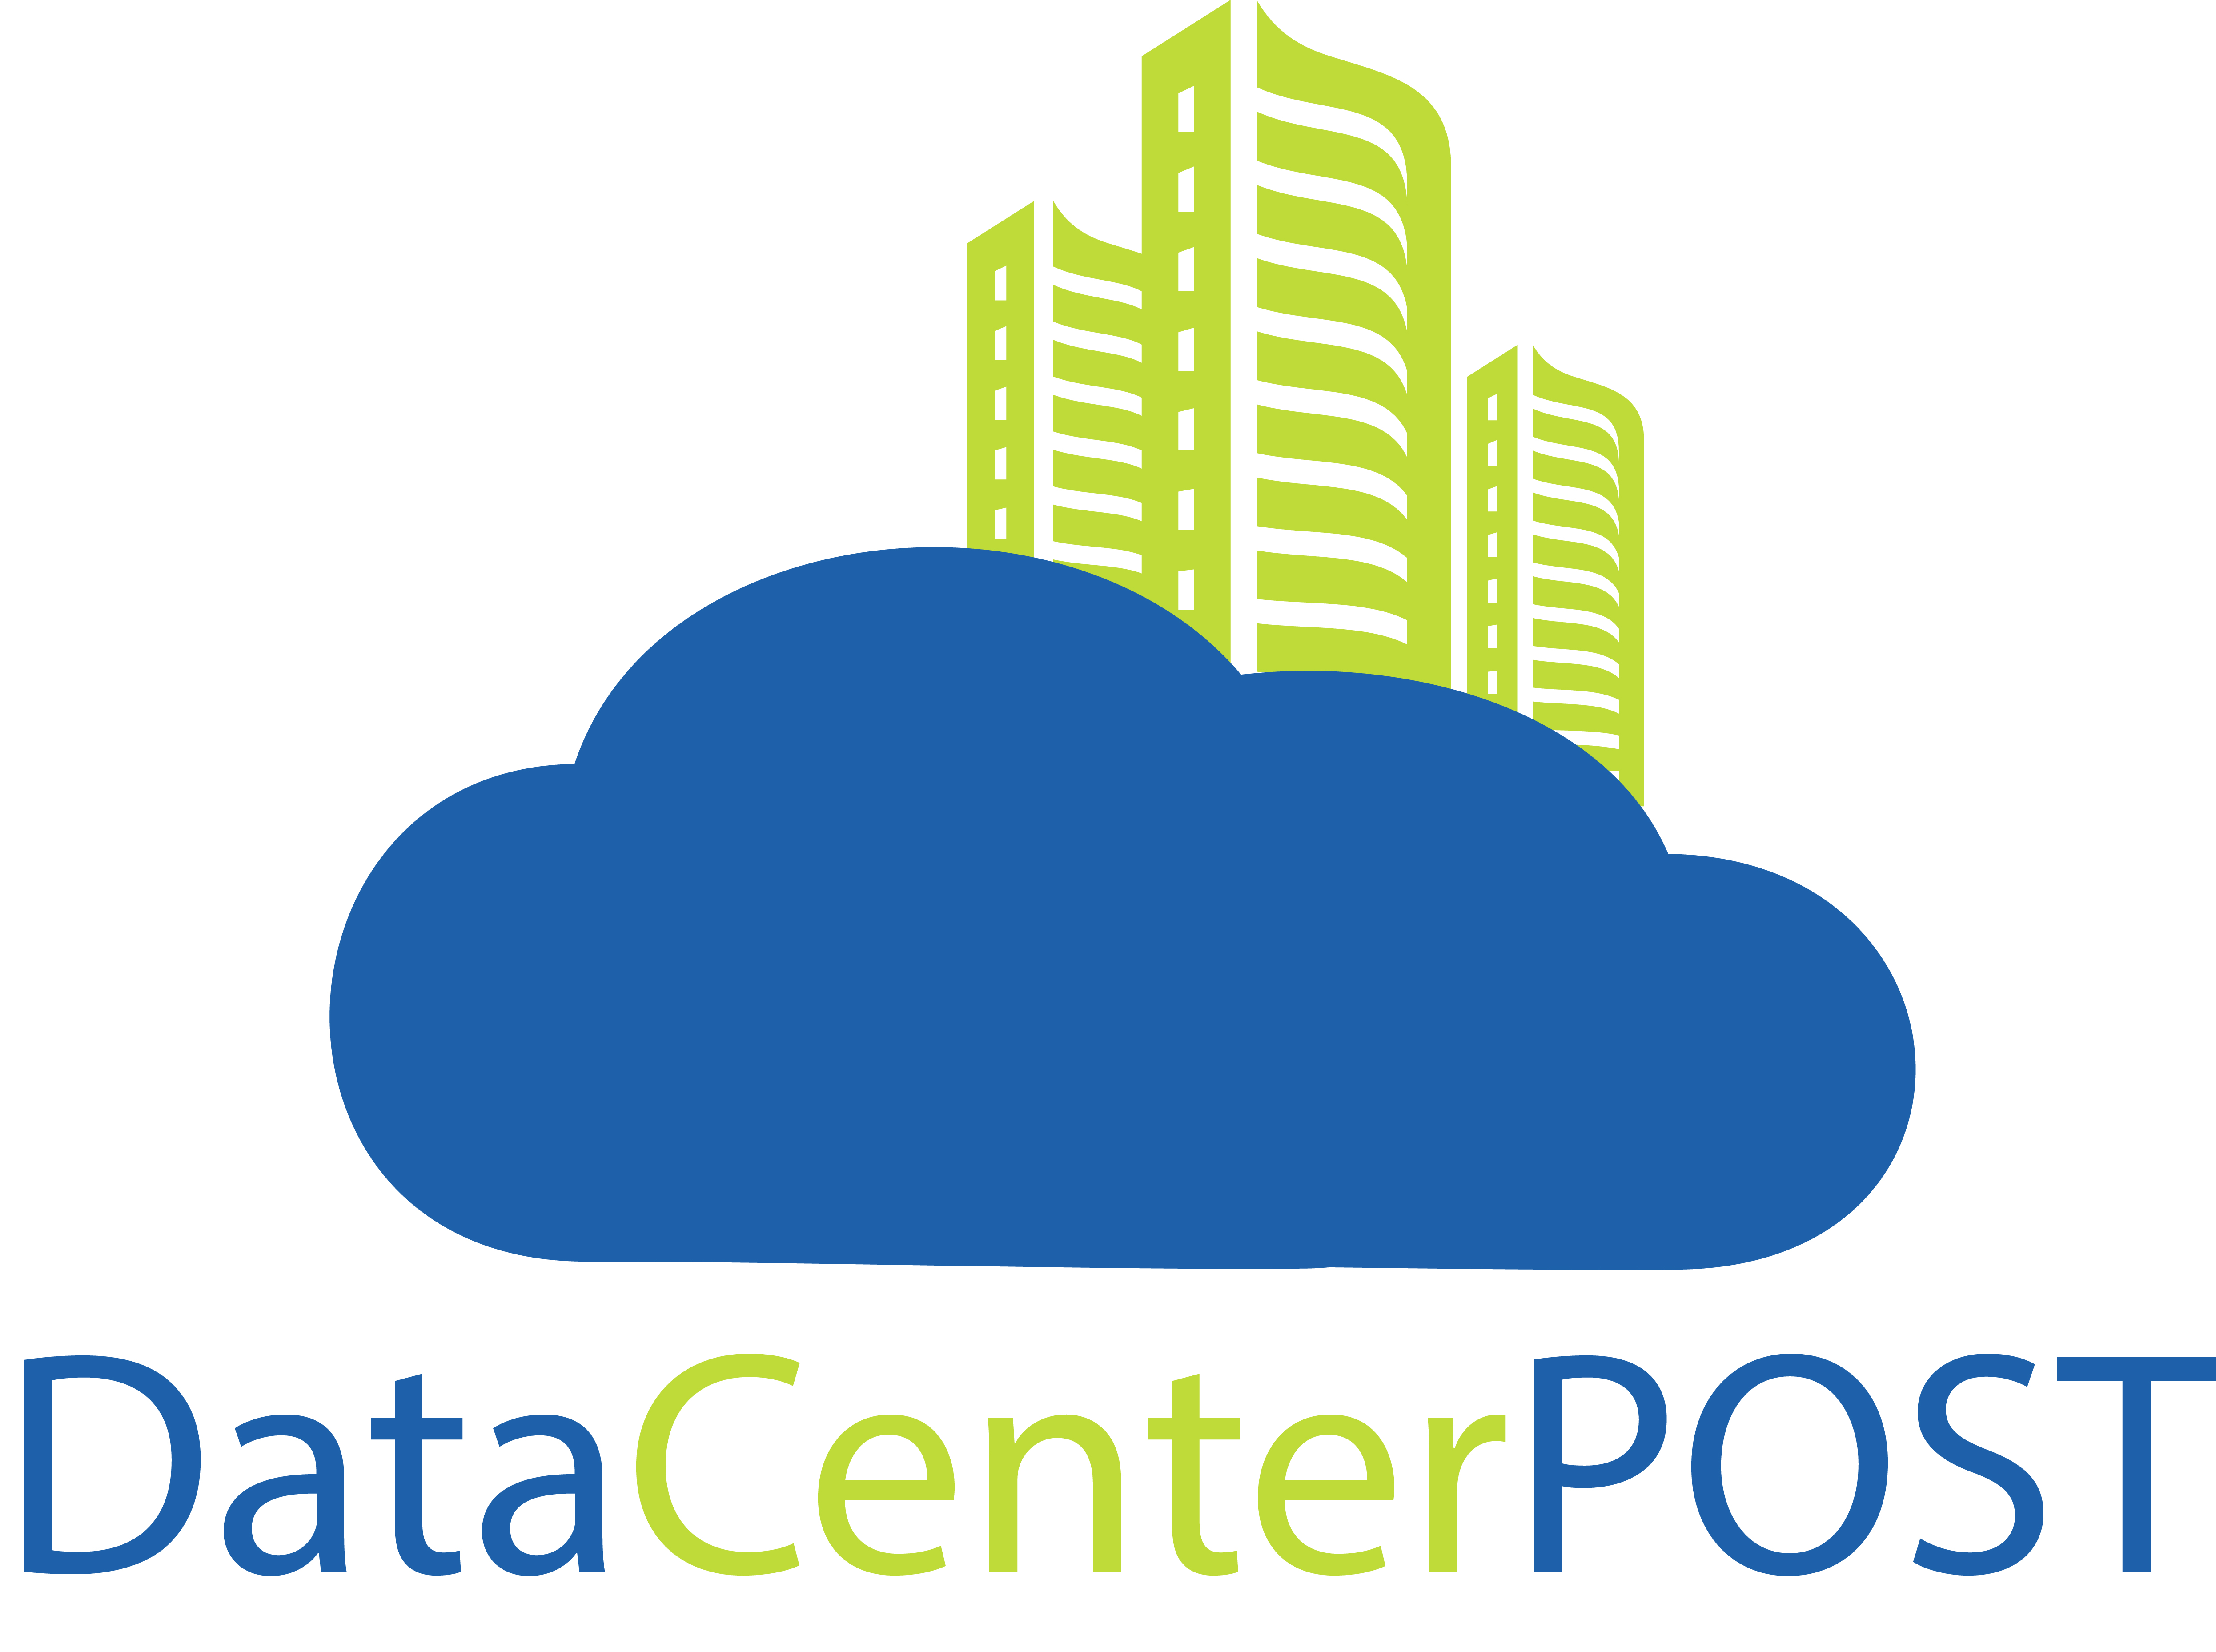 Data Center Post